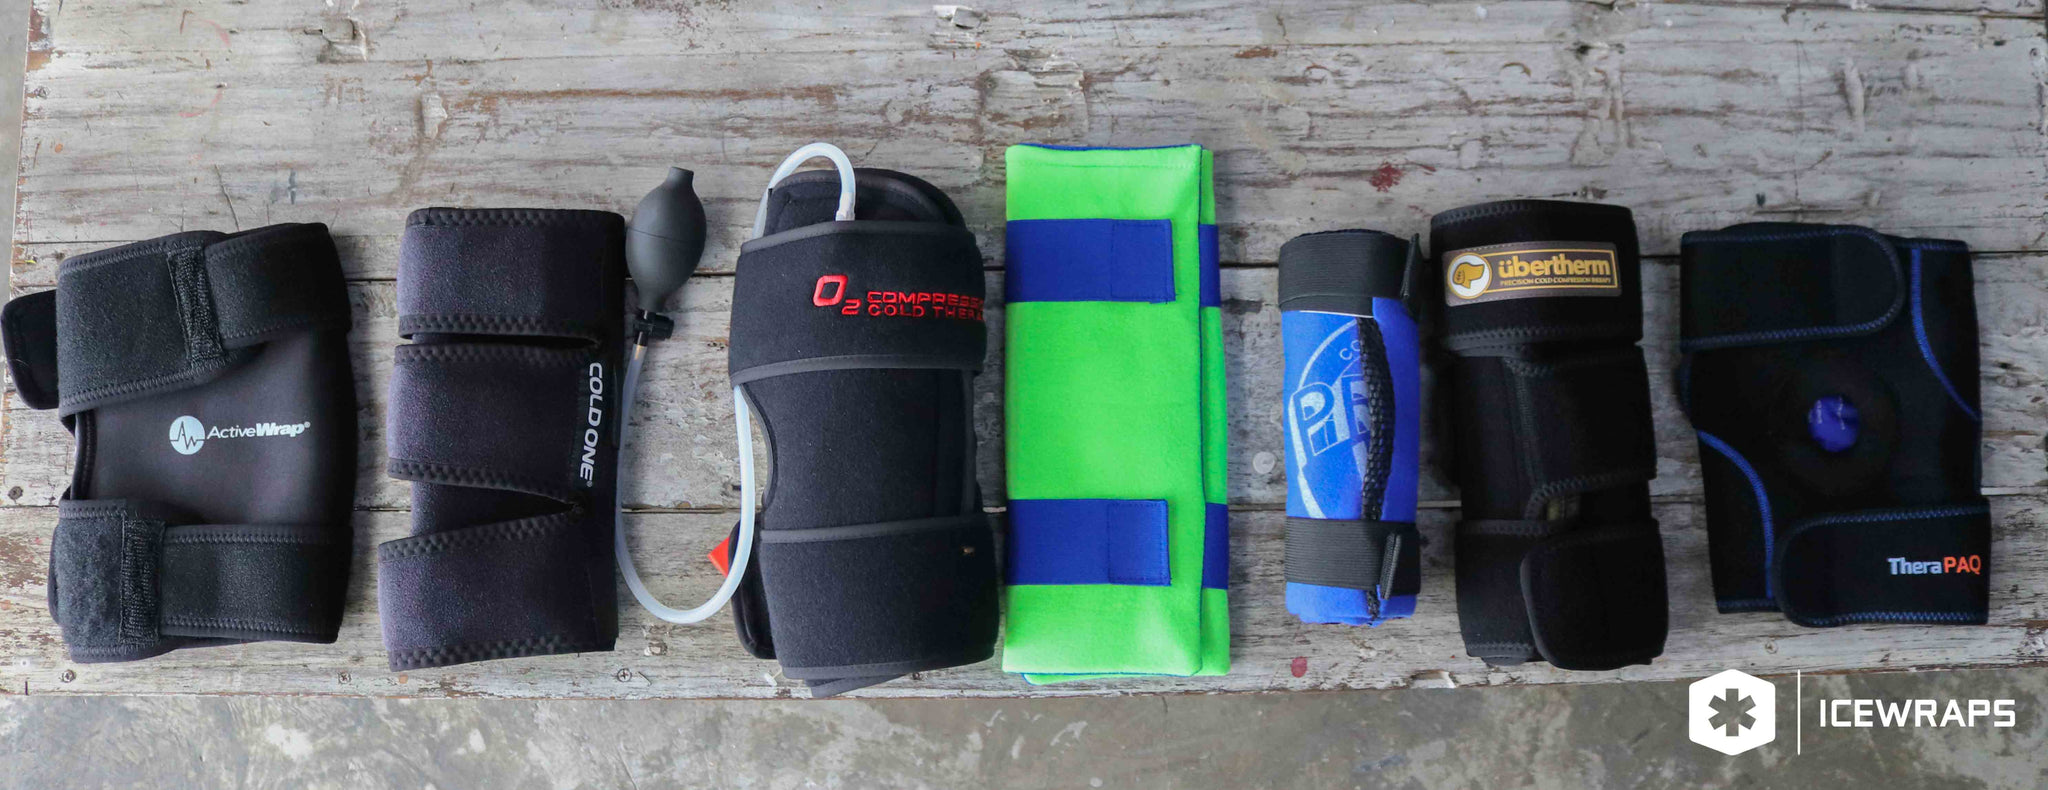 12415ac4ac What Are The Best Cold Therapy Knee Wraps For Pain, Inflammation, and  Post-Op Recovery?